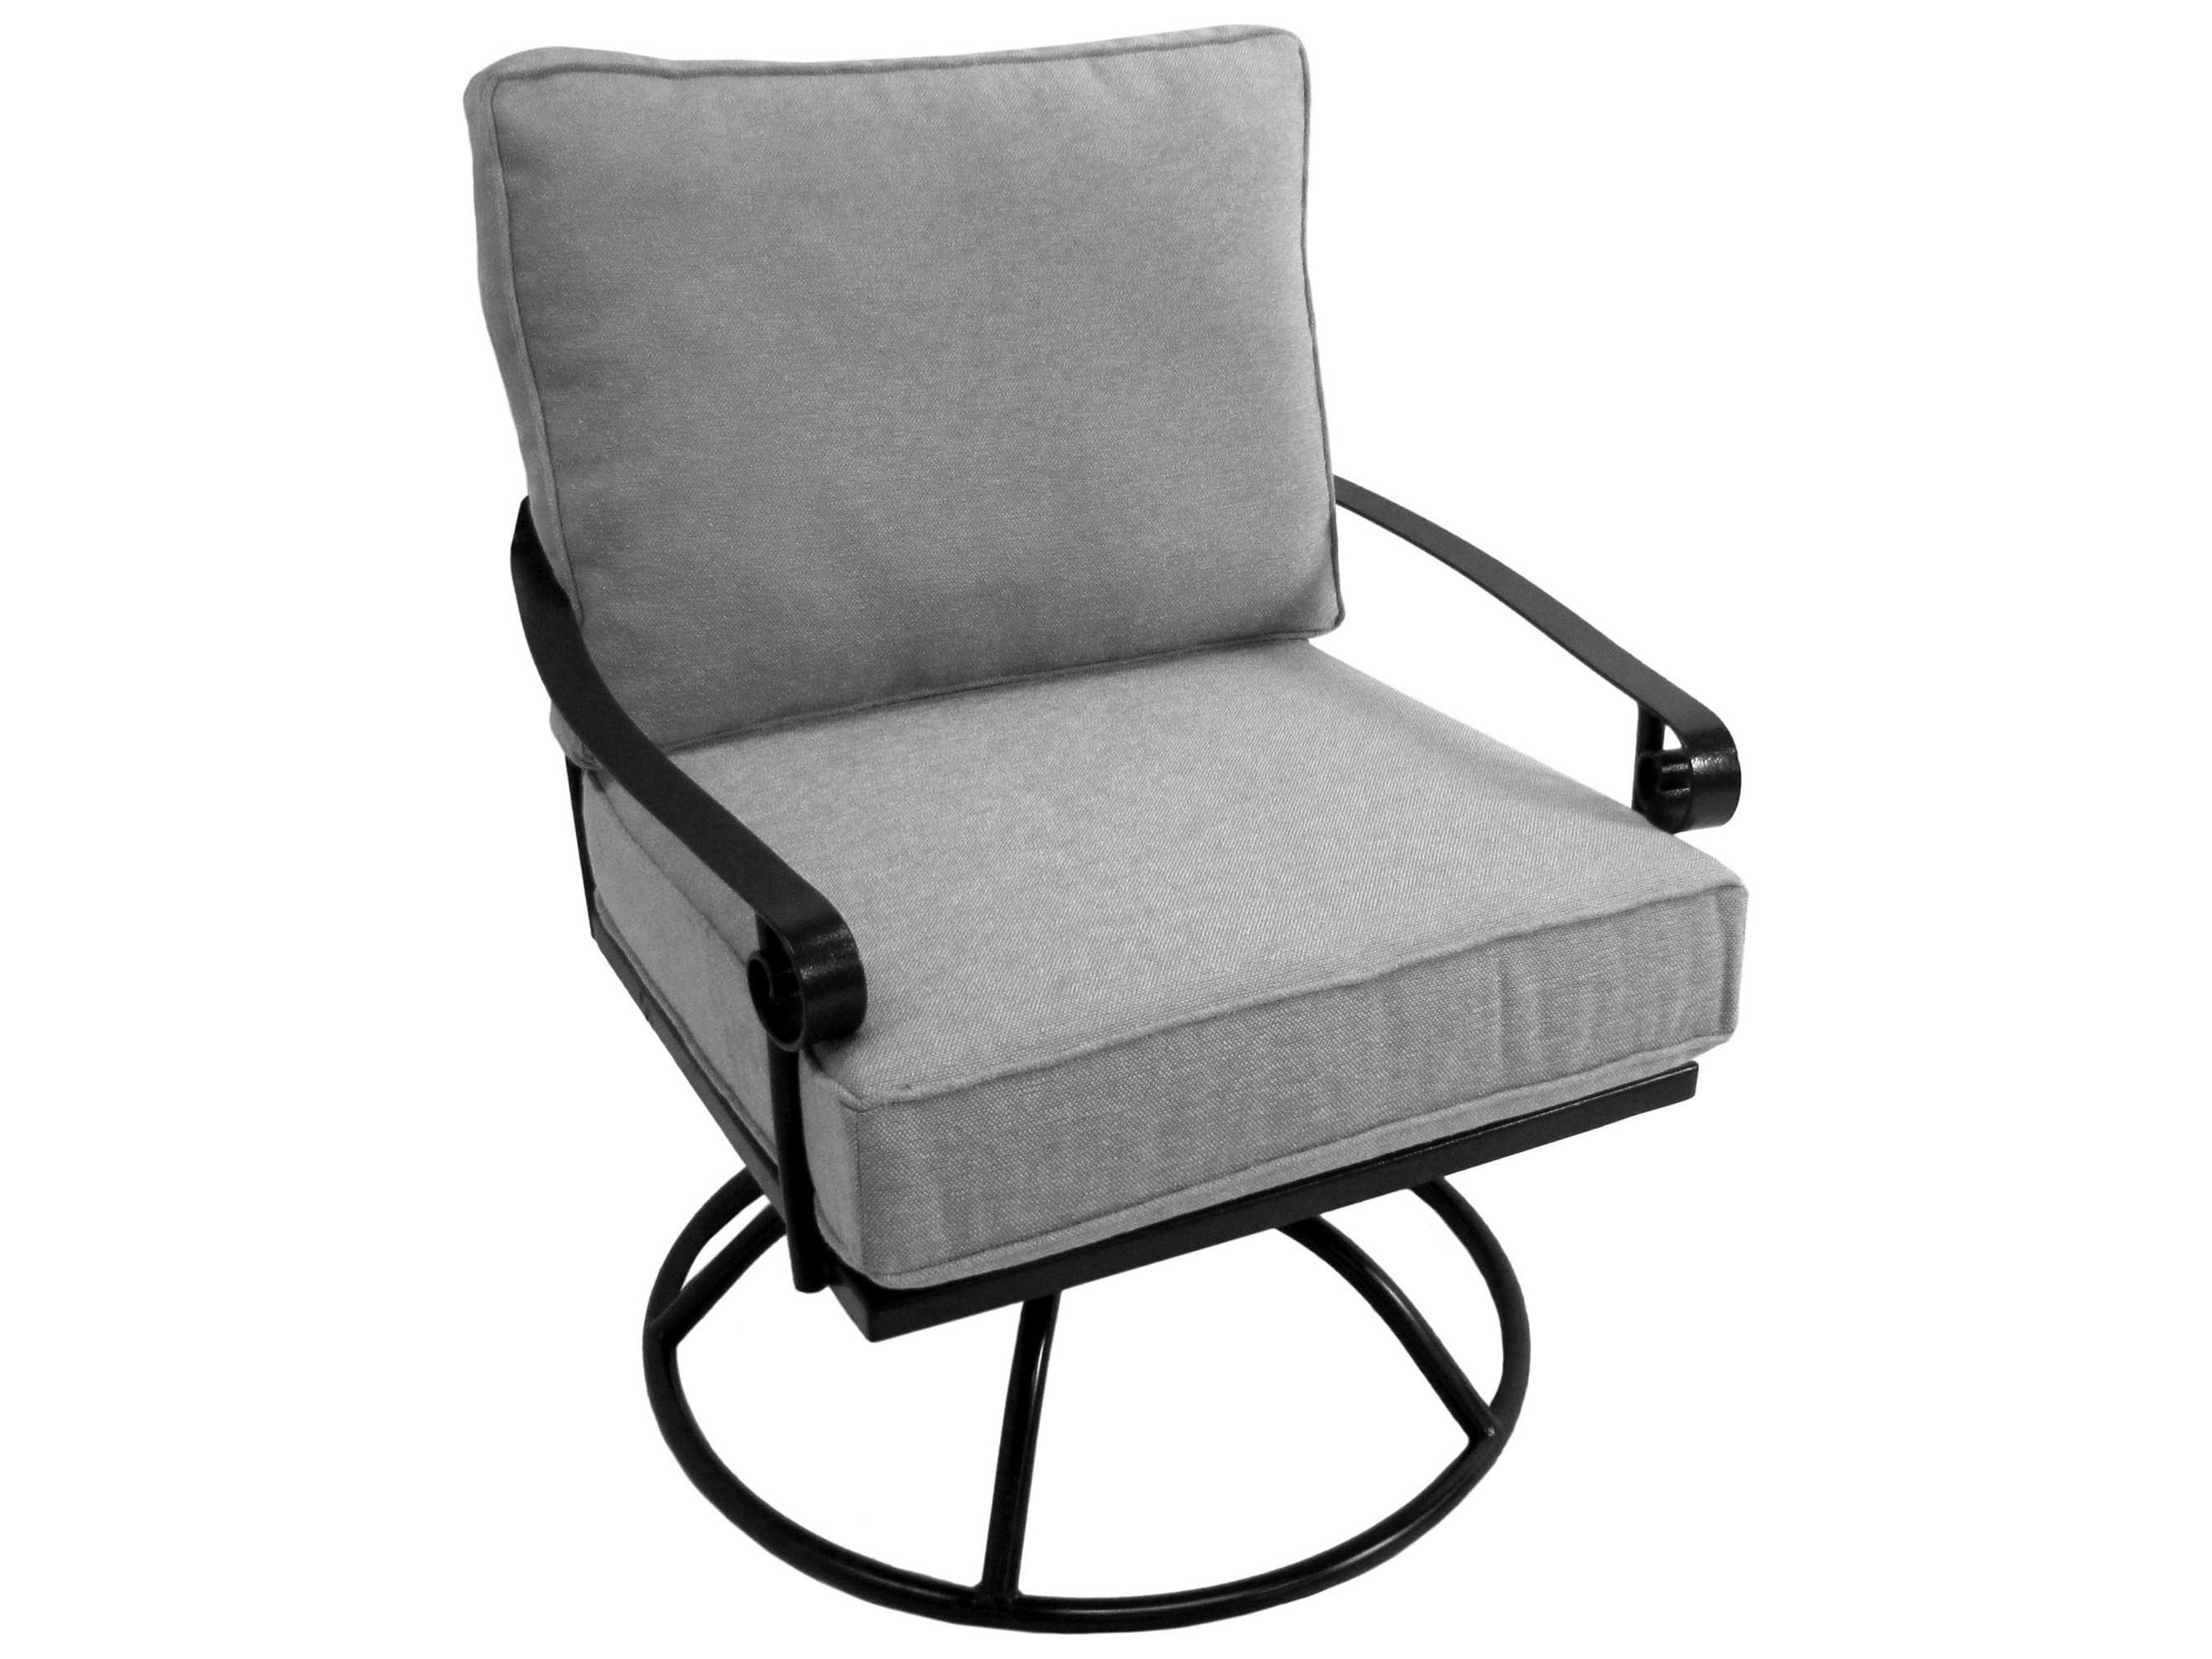 preston chair accessories revolving hsn number meadowcraft deep seating swibel rocker replacement